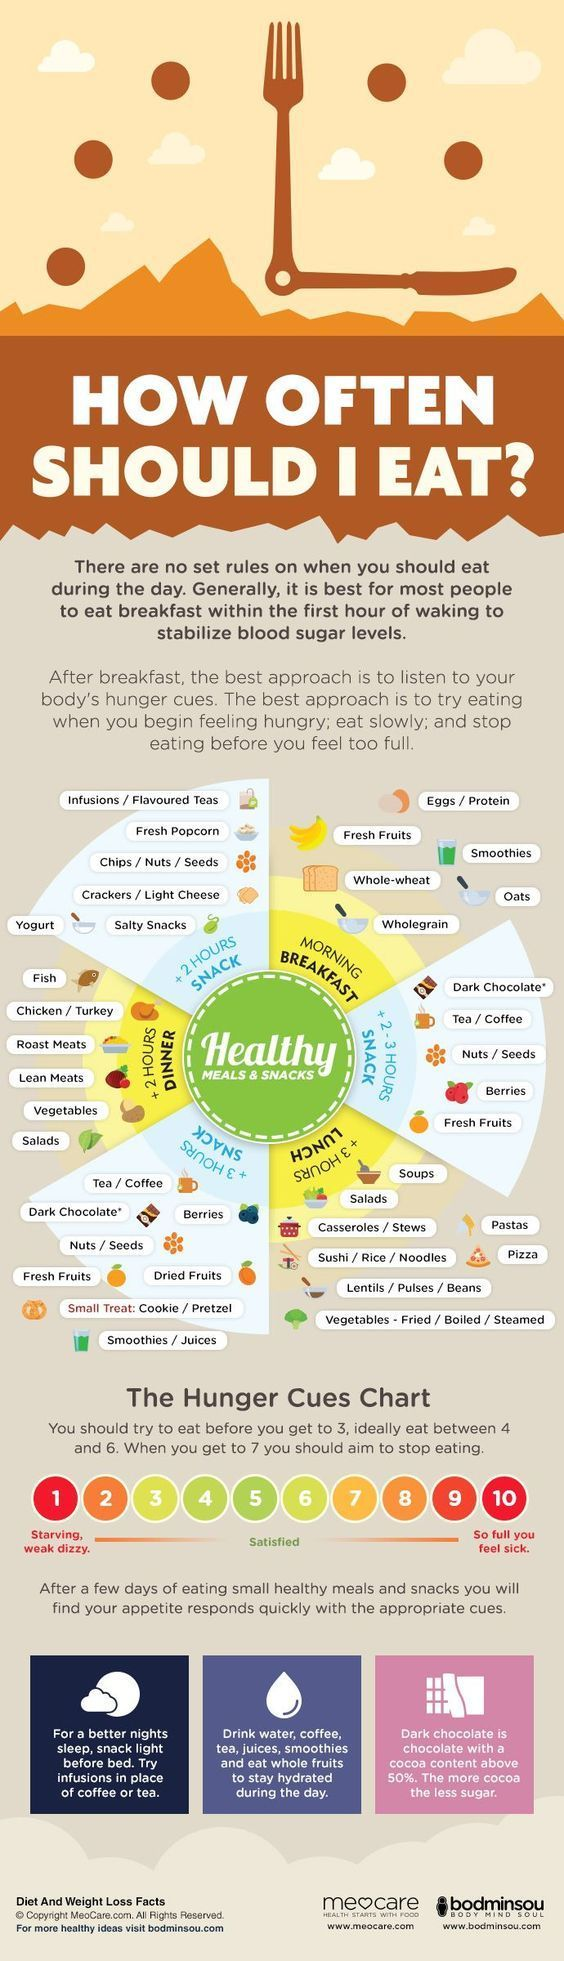 Discover 8 surprisingly simple daily habits to boost your metabolism and get your body in shape!